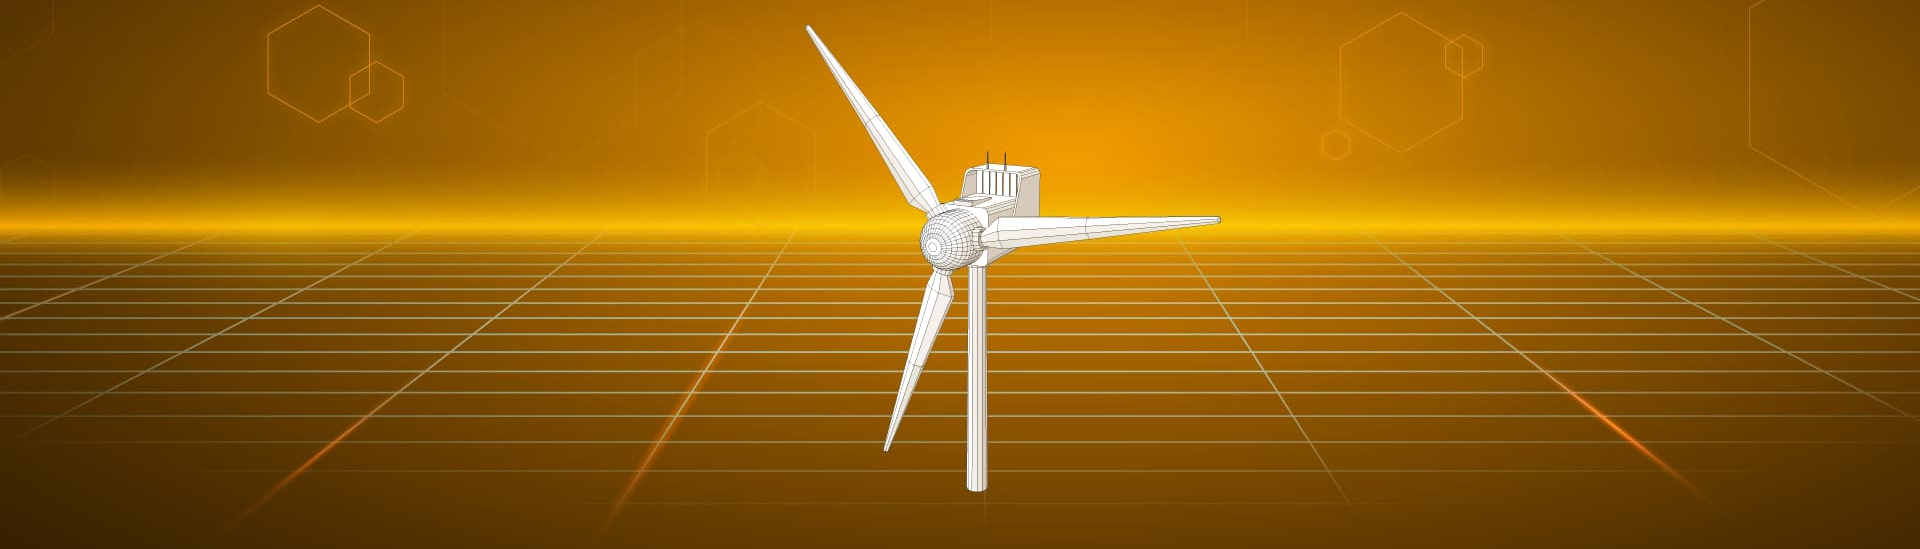 Animation wind power by KTR Systems GmbH